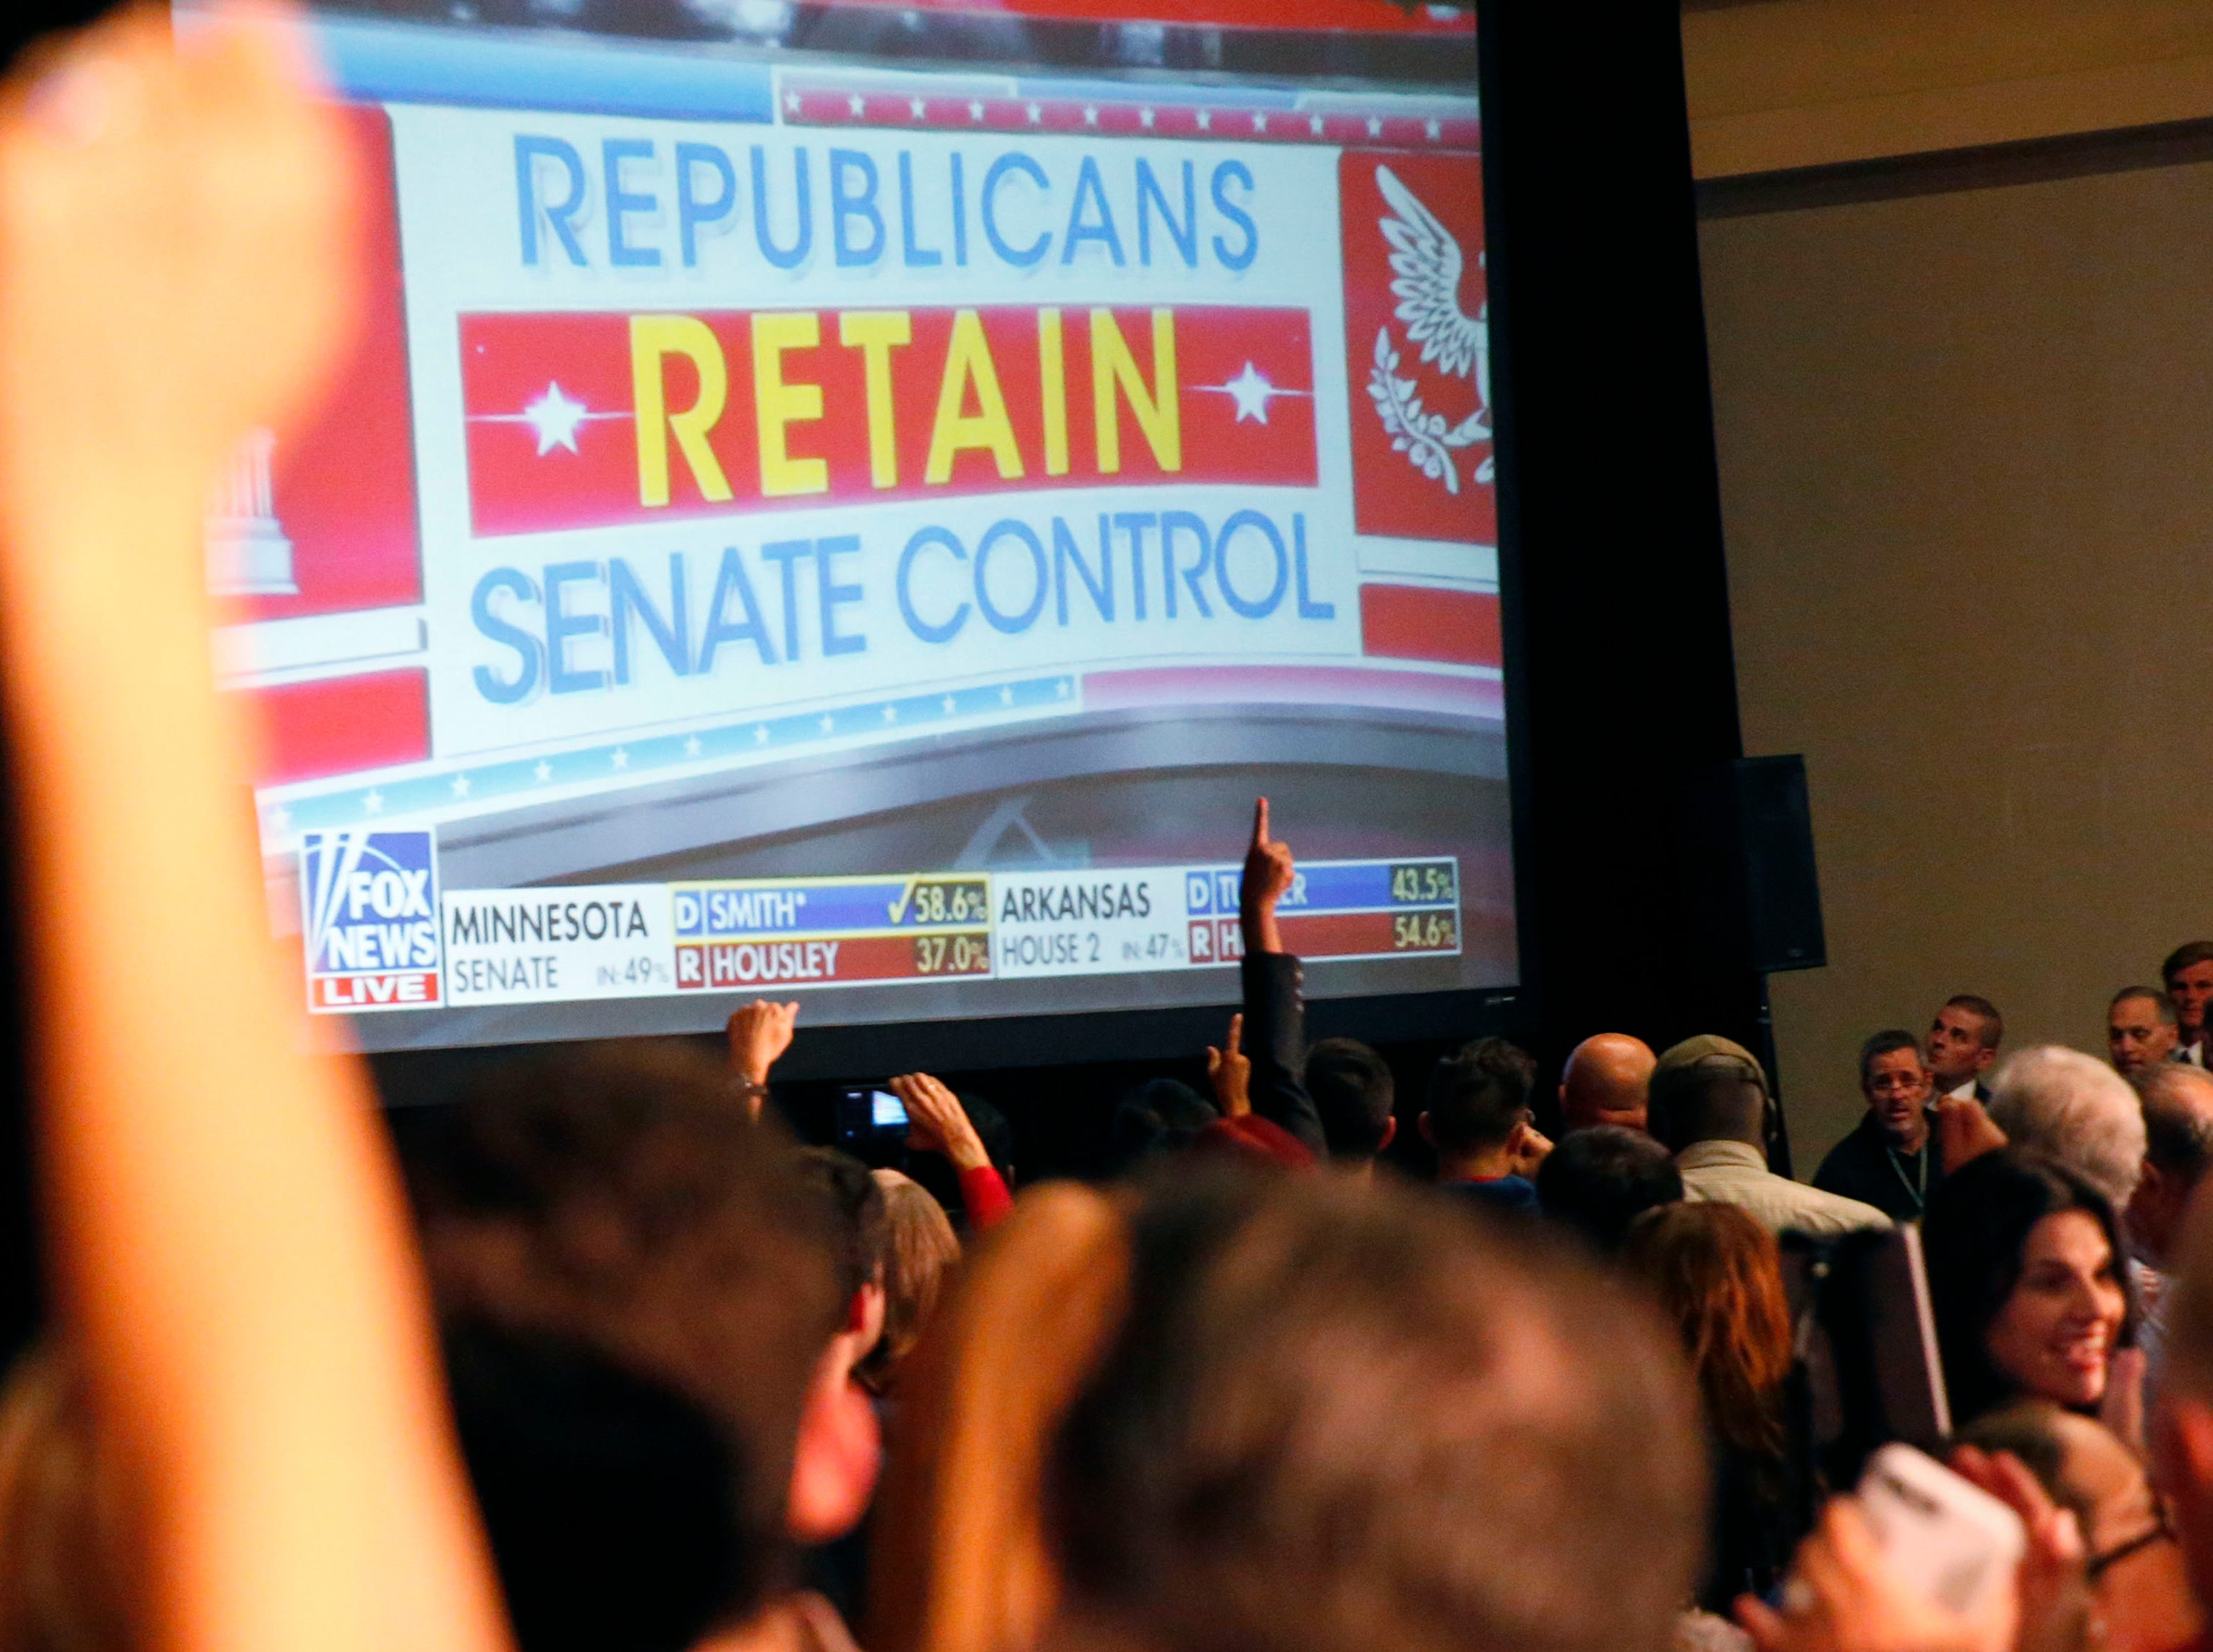 Supporters celebrate after a Fox News projects Republicans retain control of the Senate during the Arizona Republican Party Election Night party in Scottsdale Nov. 6, 2018.